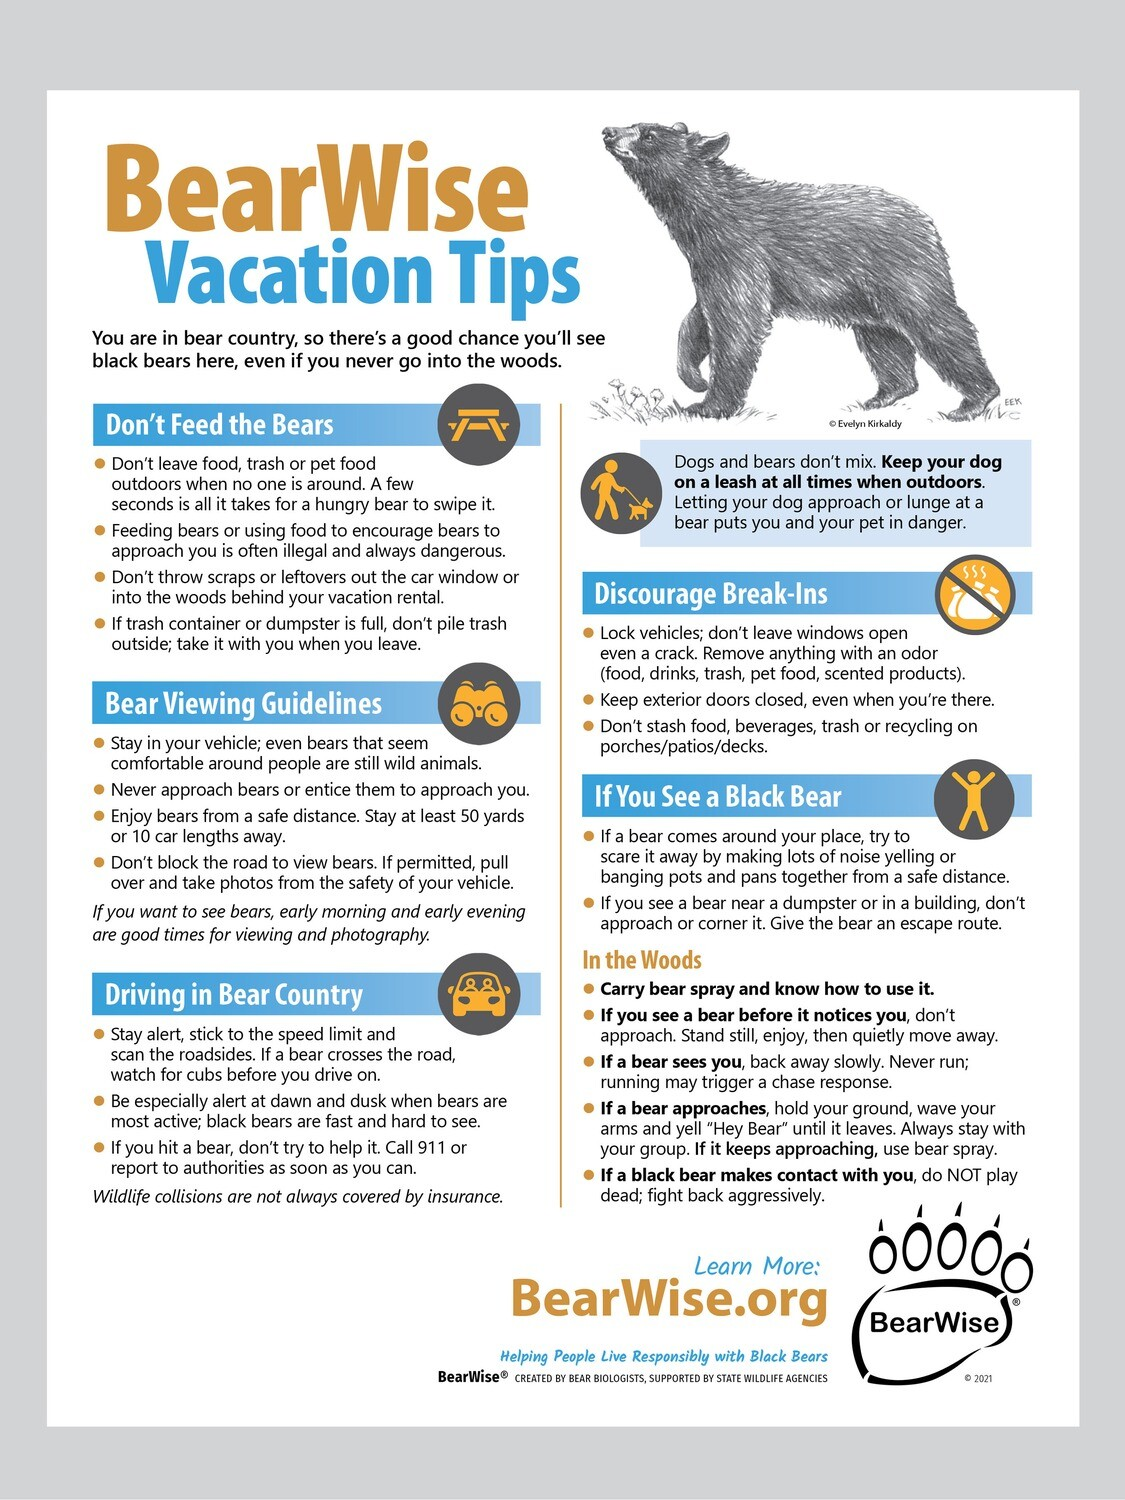 BearWise Vacation Tips Flyer